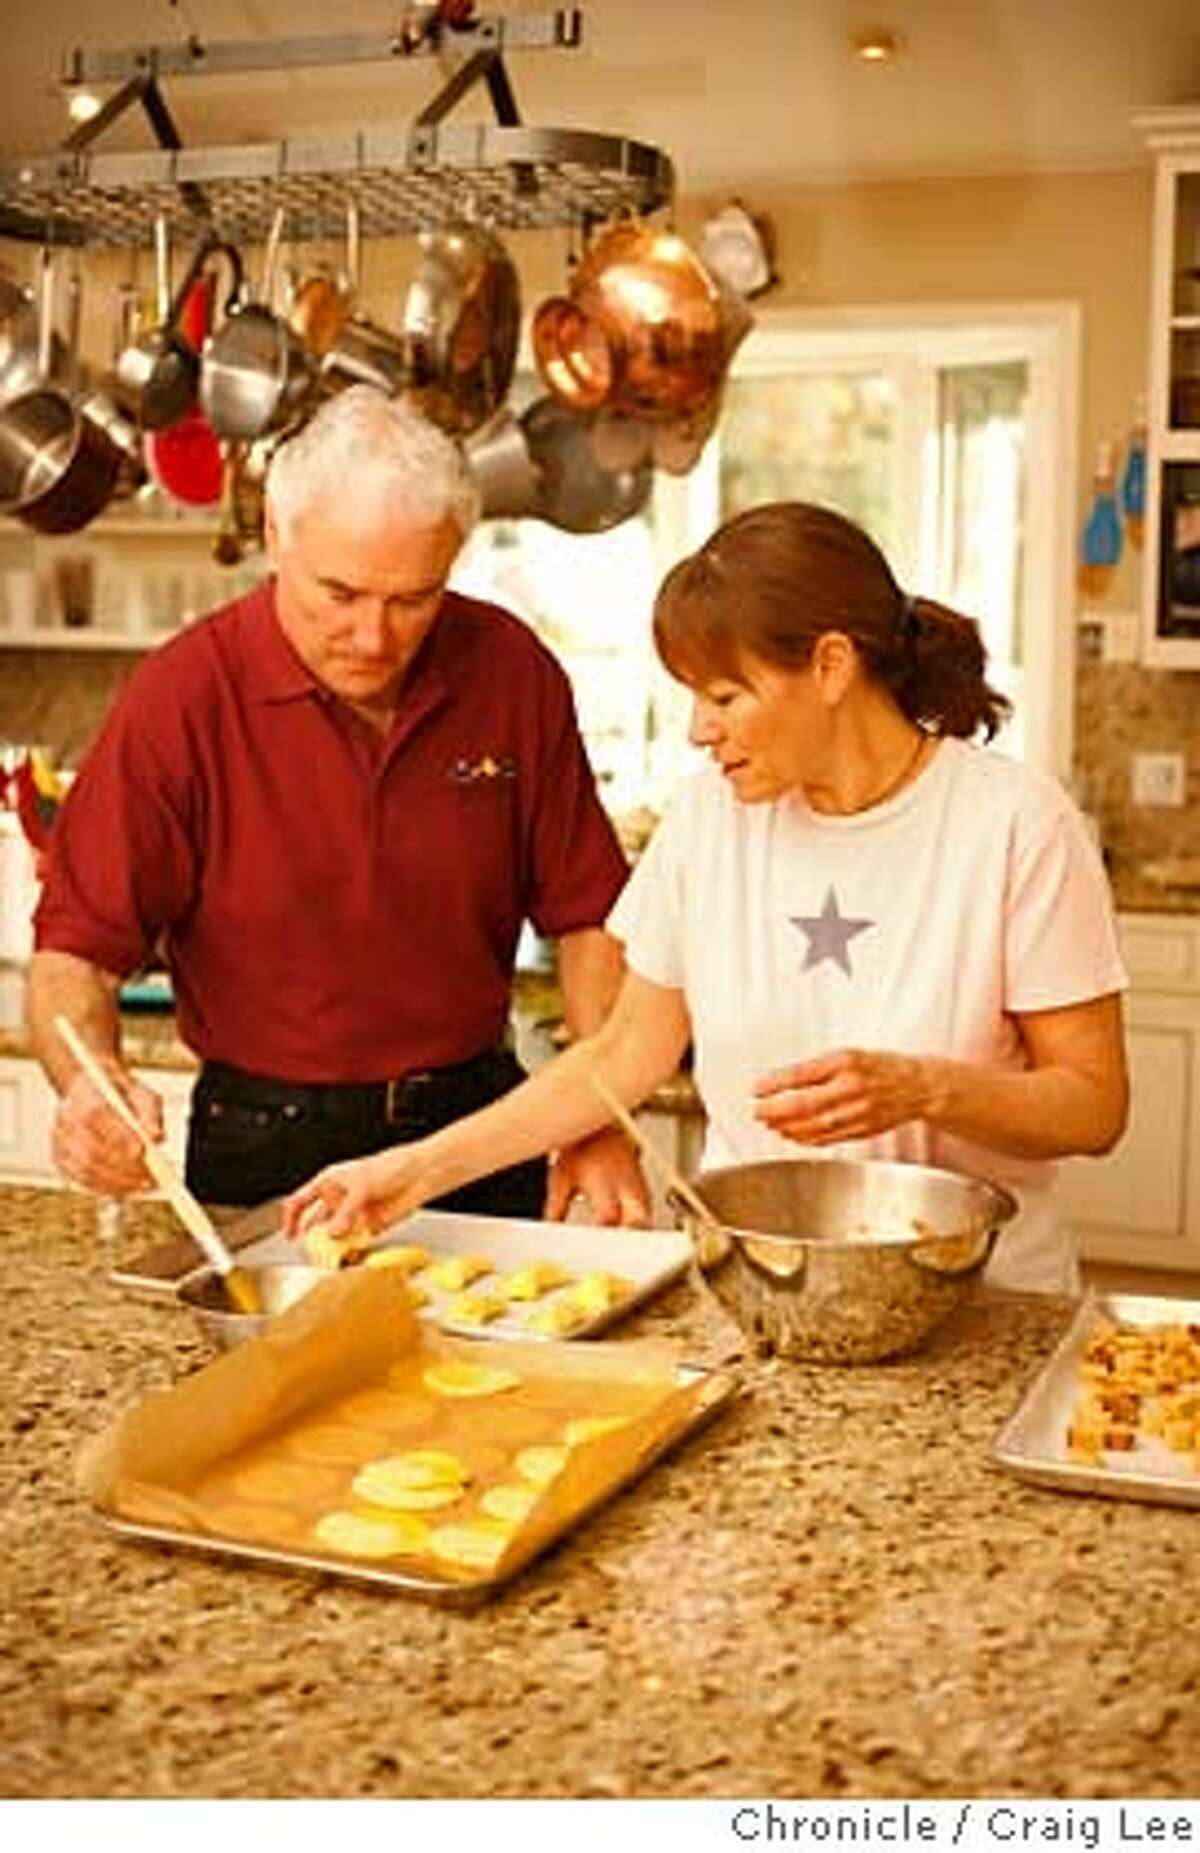 Photo of Barry Taylor and his wife, Elaine, working in their home kitchen preparing a charity dinner party they are throwing. They are making empanadas. Valentine's Day story on couples who are food incompatible. Elaine Taylor suffers from celiac disease, meaning she has to eat only gluten-free foods. Being diagnosed turned her and her husband, Barry's world upside down. Her husband has to keep food separate from hers and not cause cross contamination or it could make Elaine very sick. photo by Craig Lee / The Chronicle MANDATORY CREDIT FOR PHOTOG AND SF CHRONICLE/NO SALES-MAGS OUT